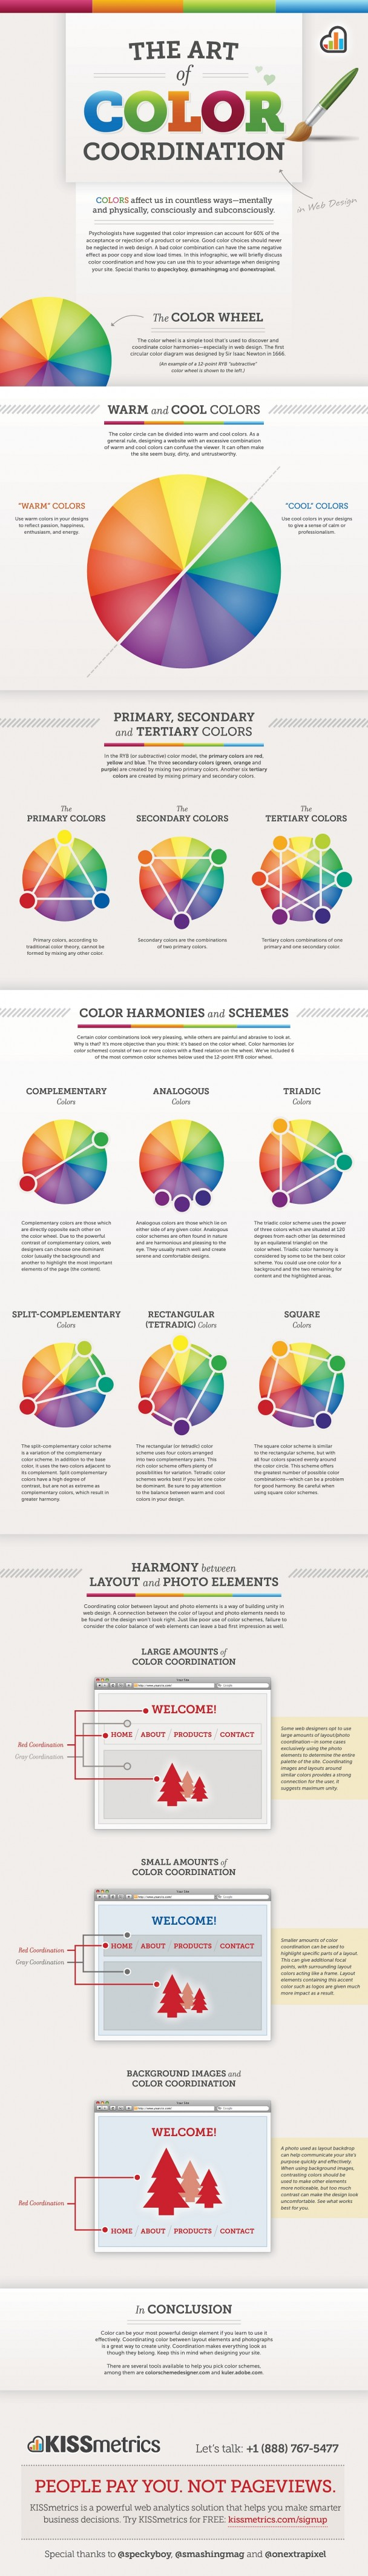 The Art Of Color Coordination Paint Tool Sai Tutorial Pinterest